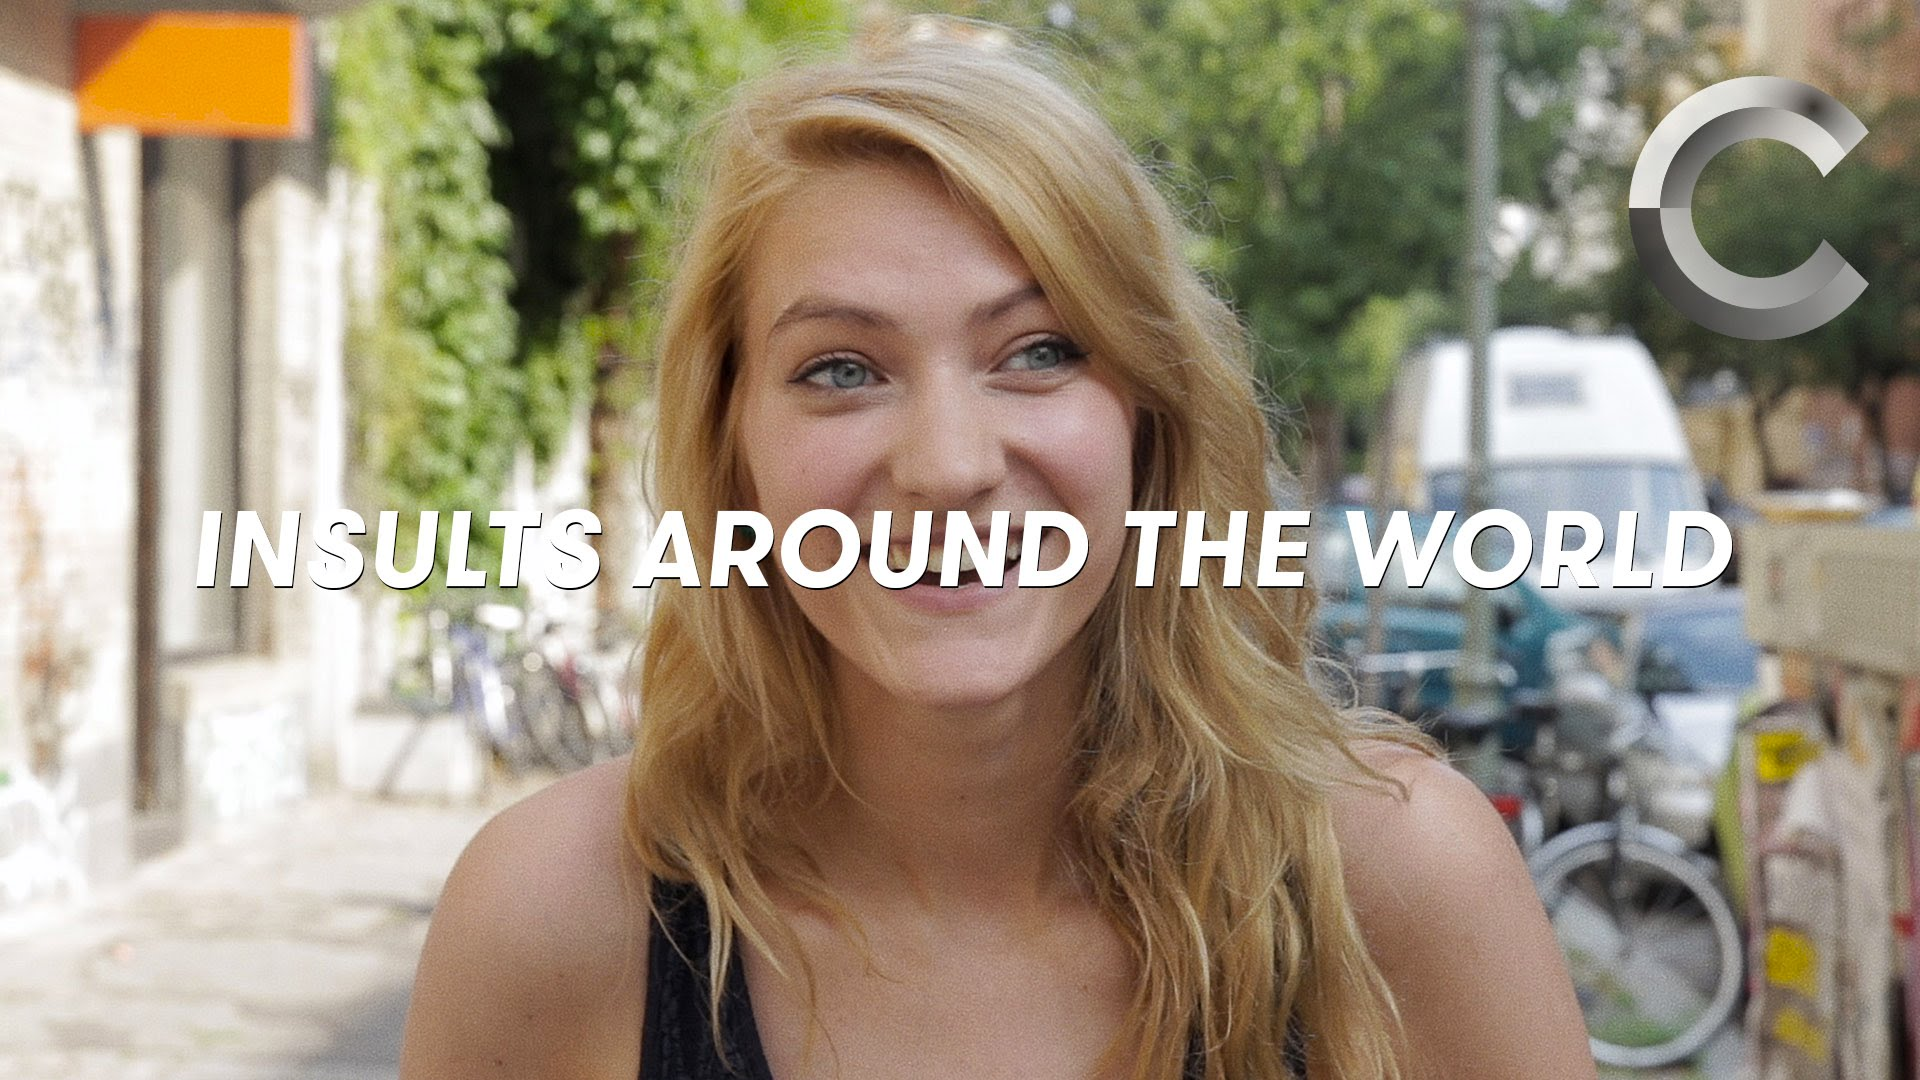 Examples of Insults From Around the World